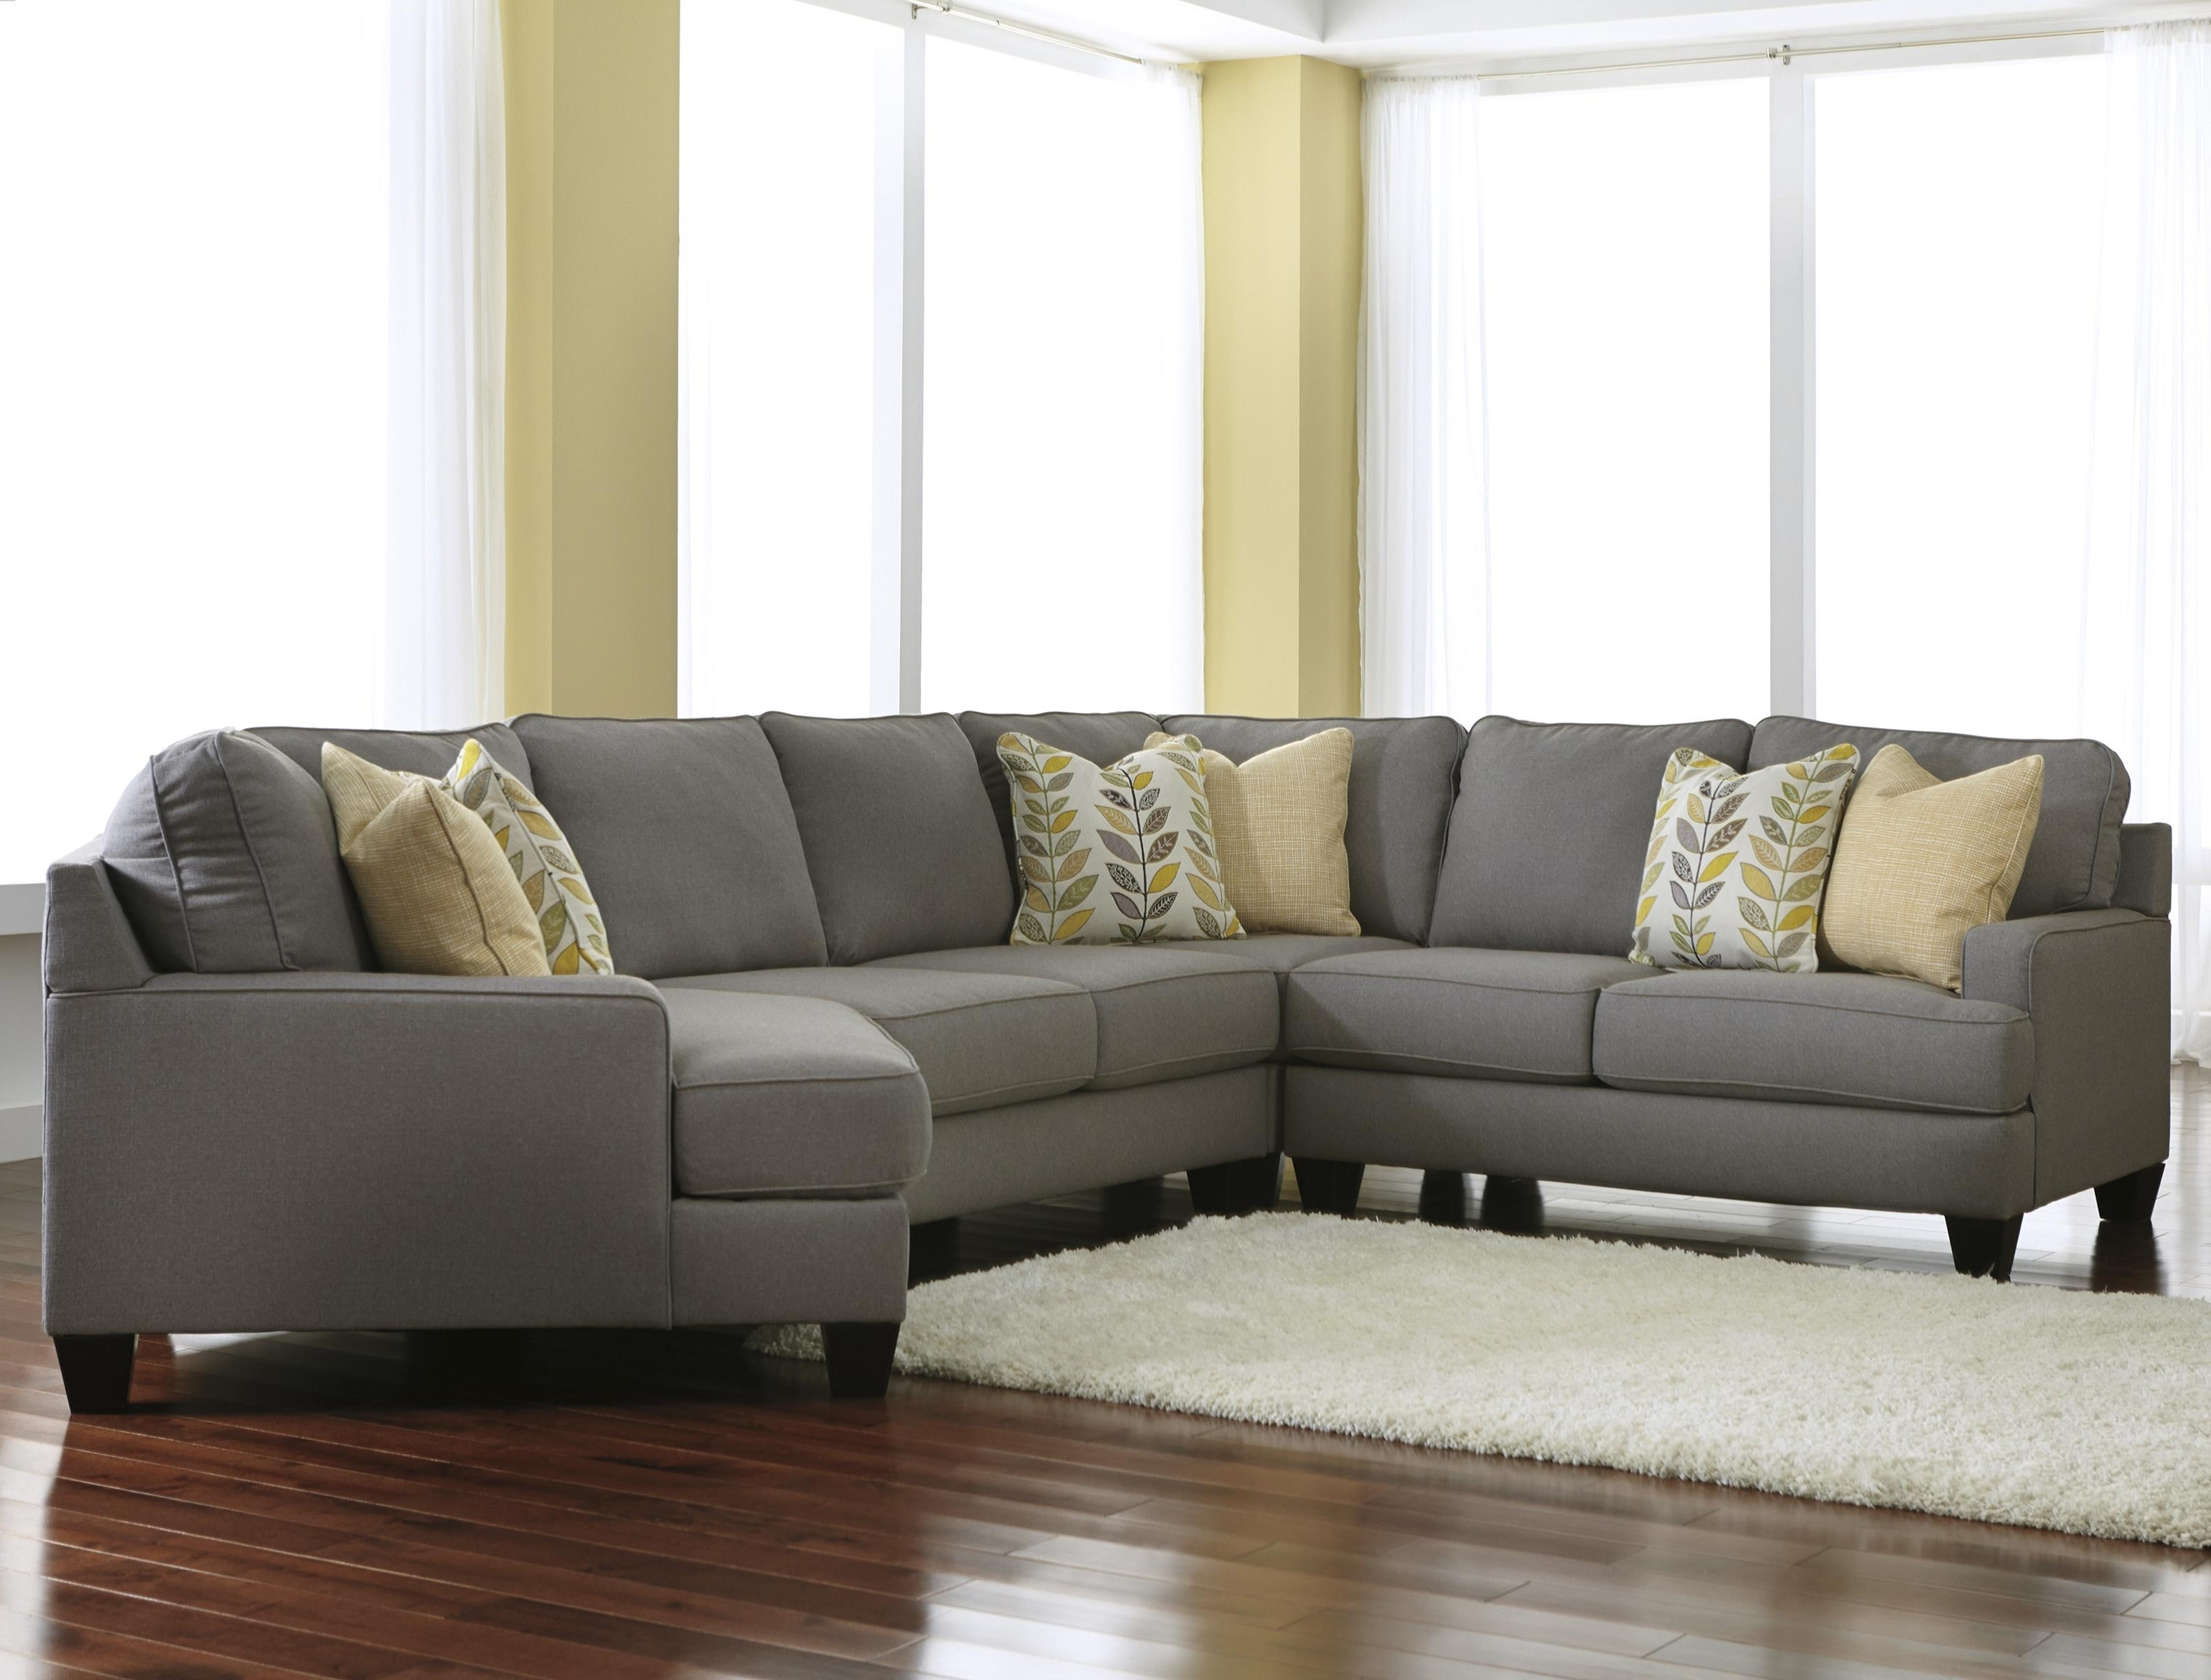 Most Current Modern 4 Piece Sectional Sofa With Right Cuddler & Reversible Seat Regarding Cuddler Sectional Sofas (View 10 of 20)